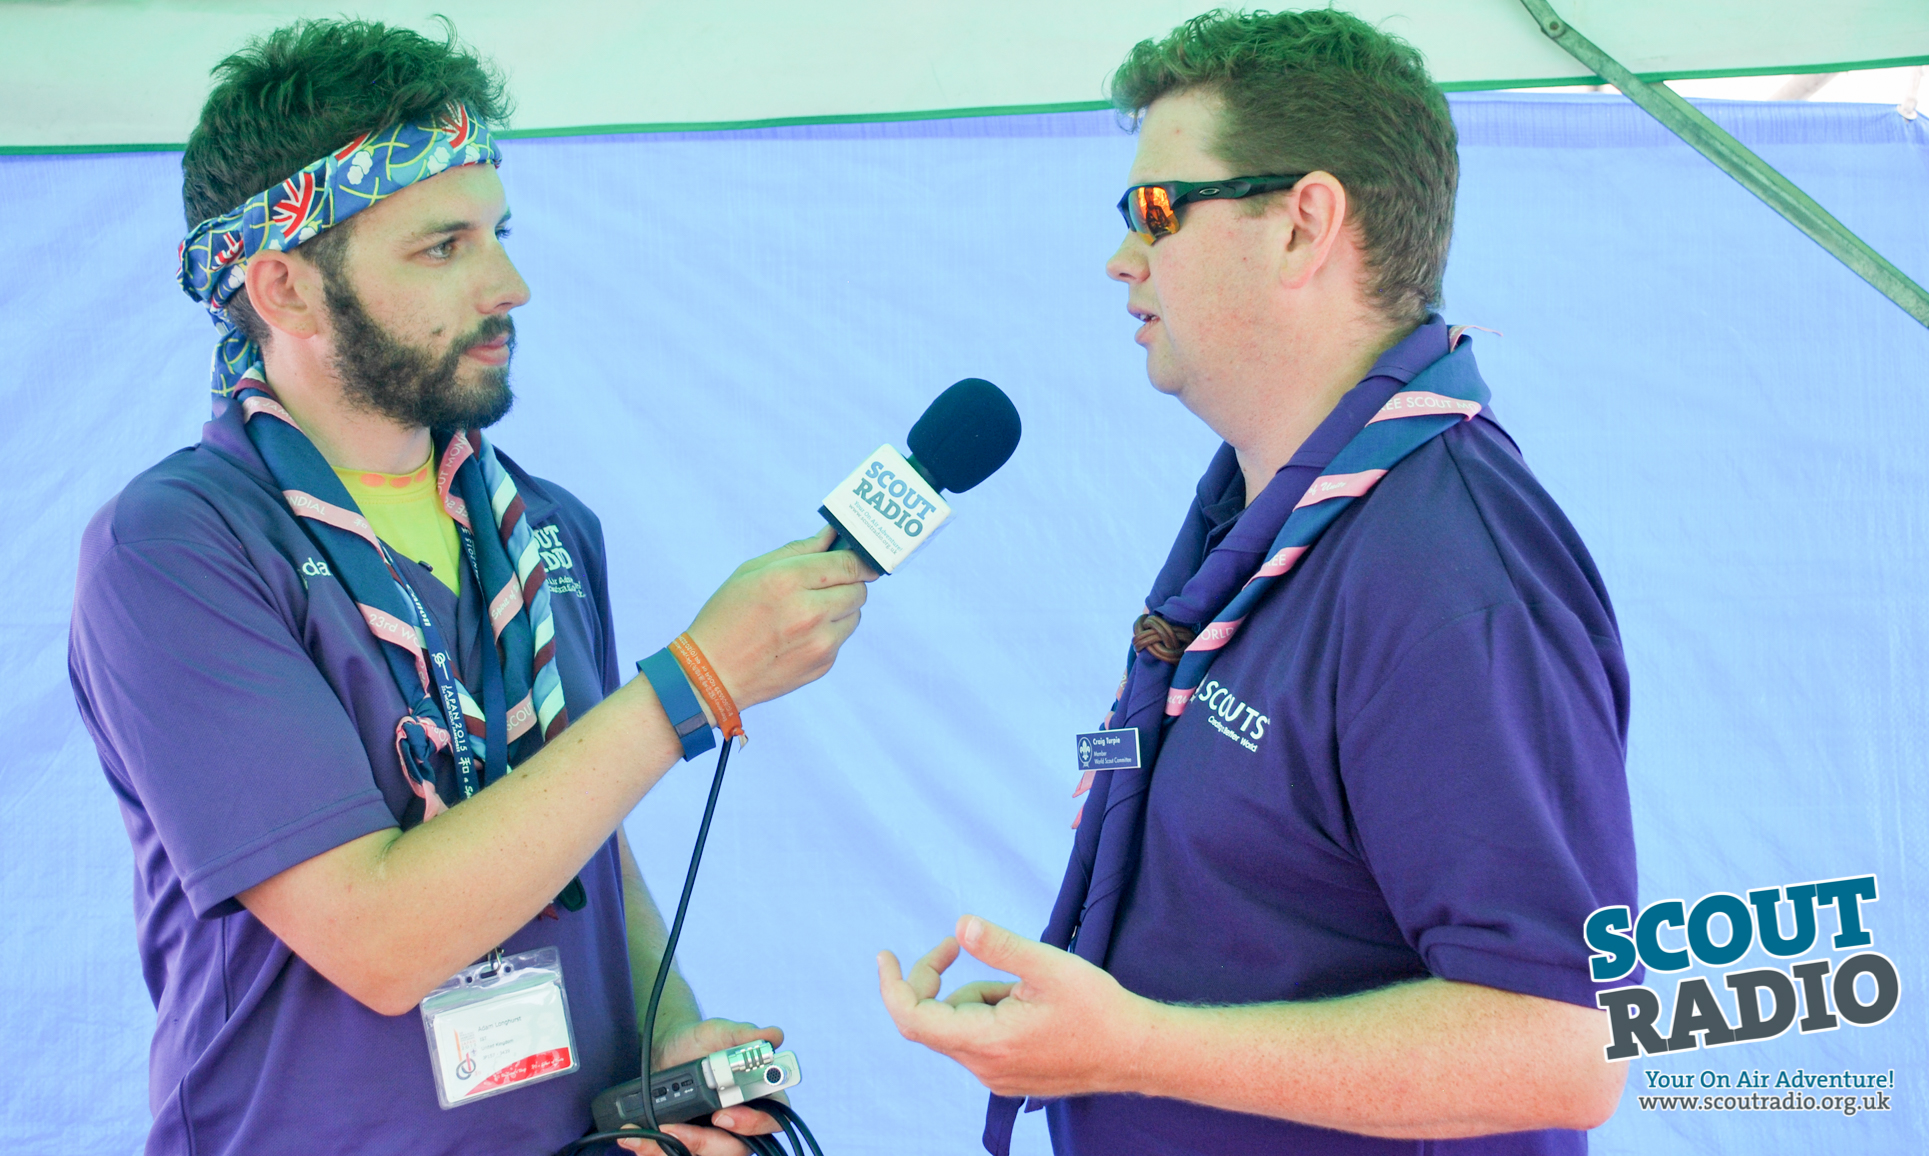 Craig Turpie – Chairman of the World Scout Committee